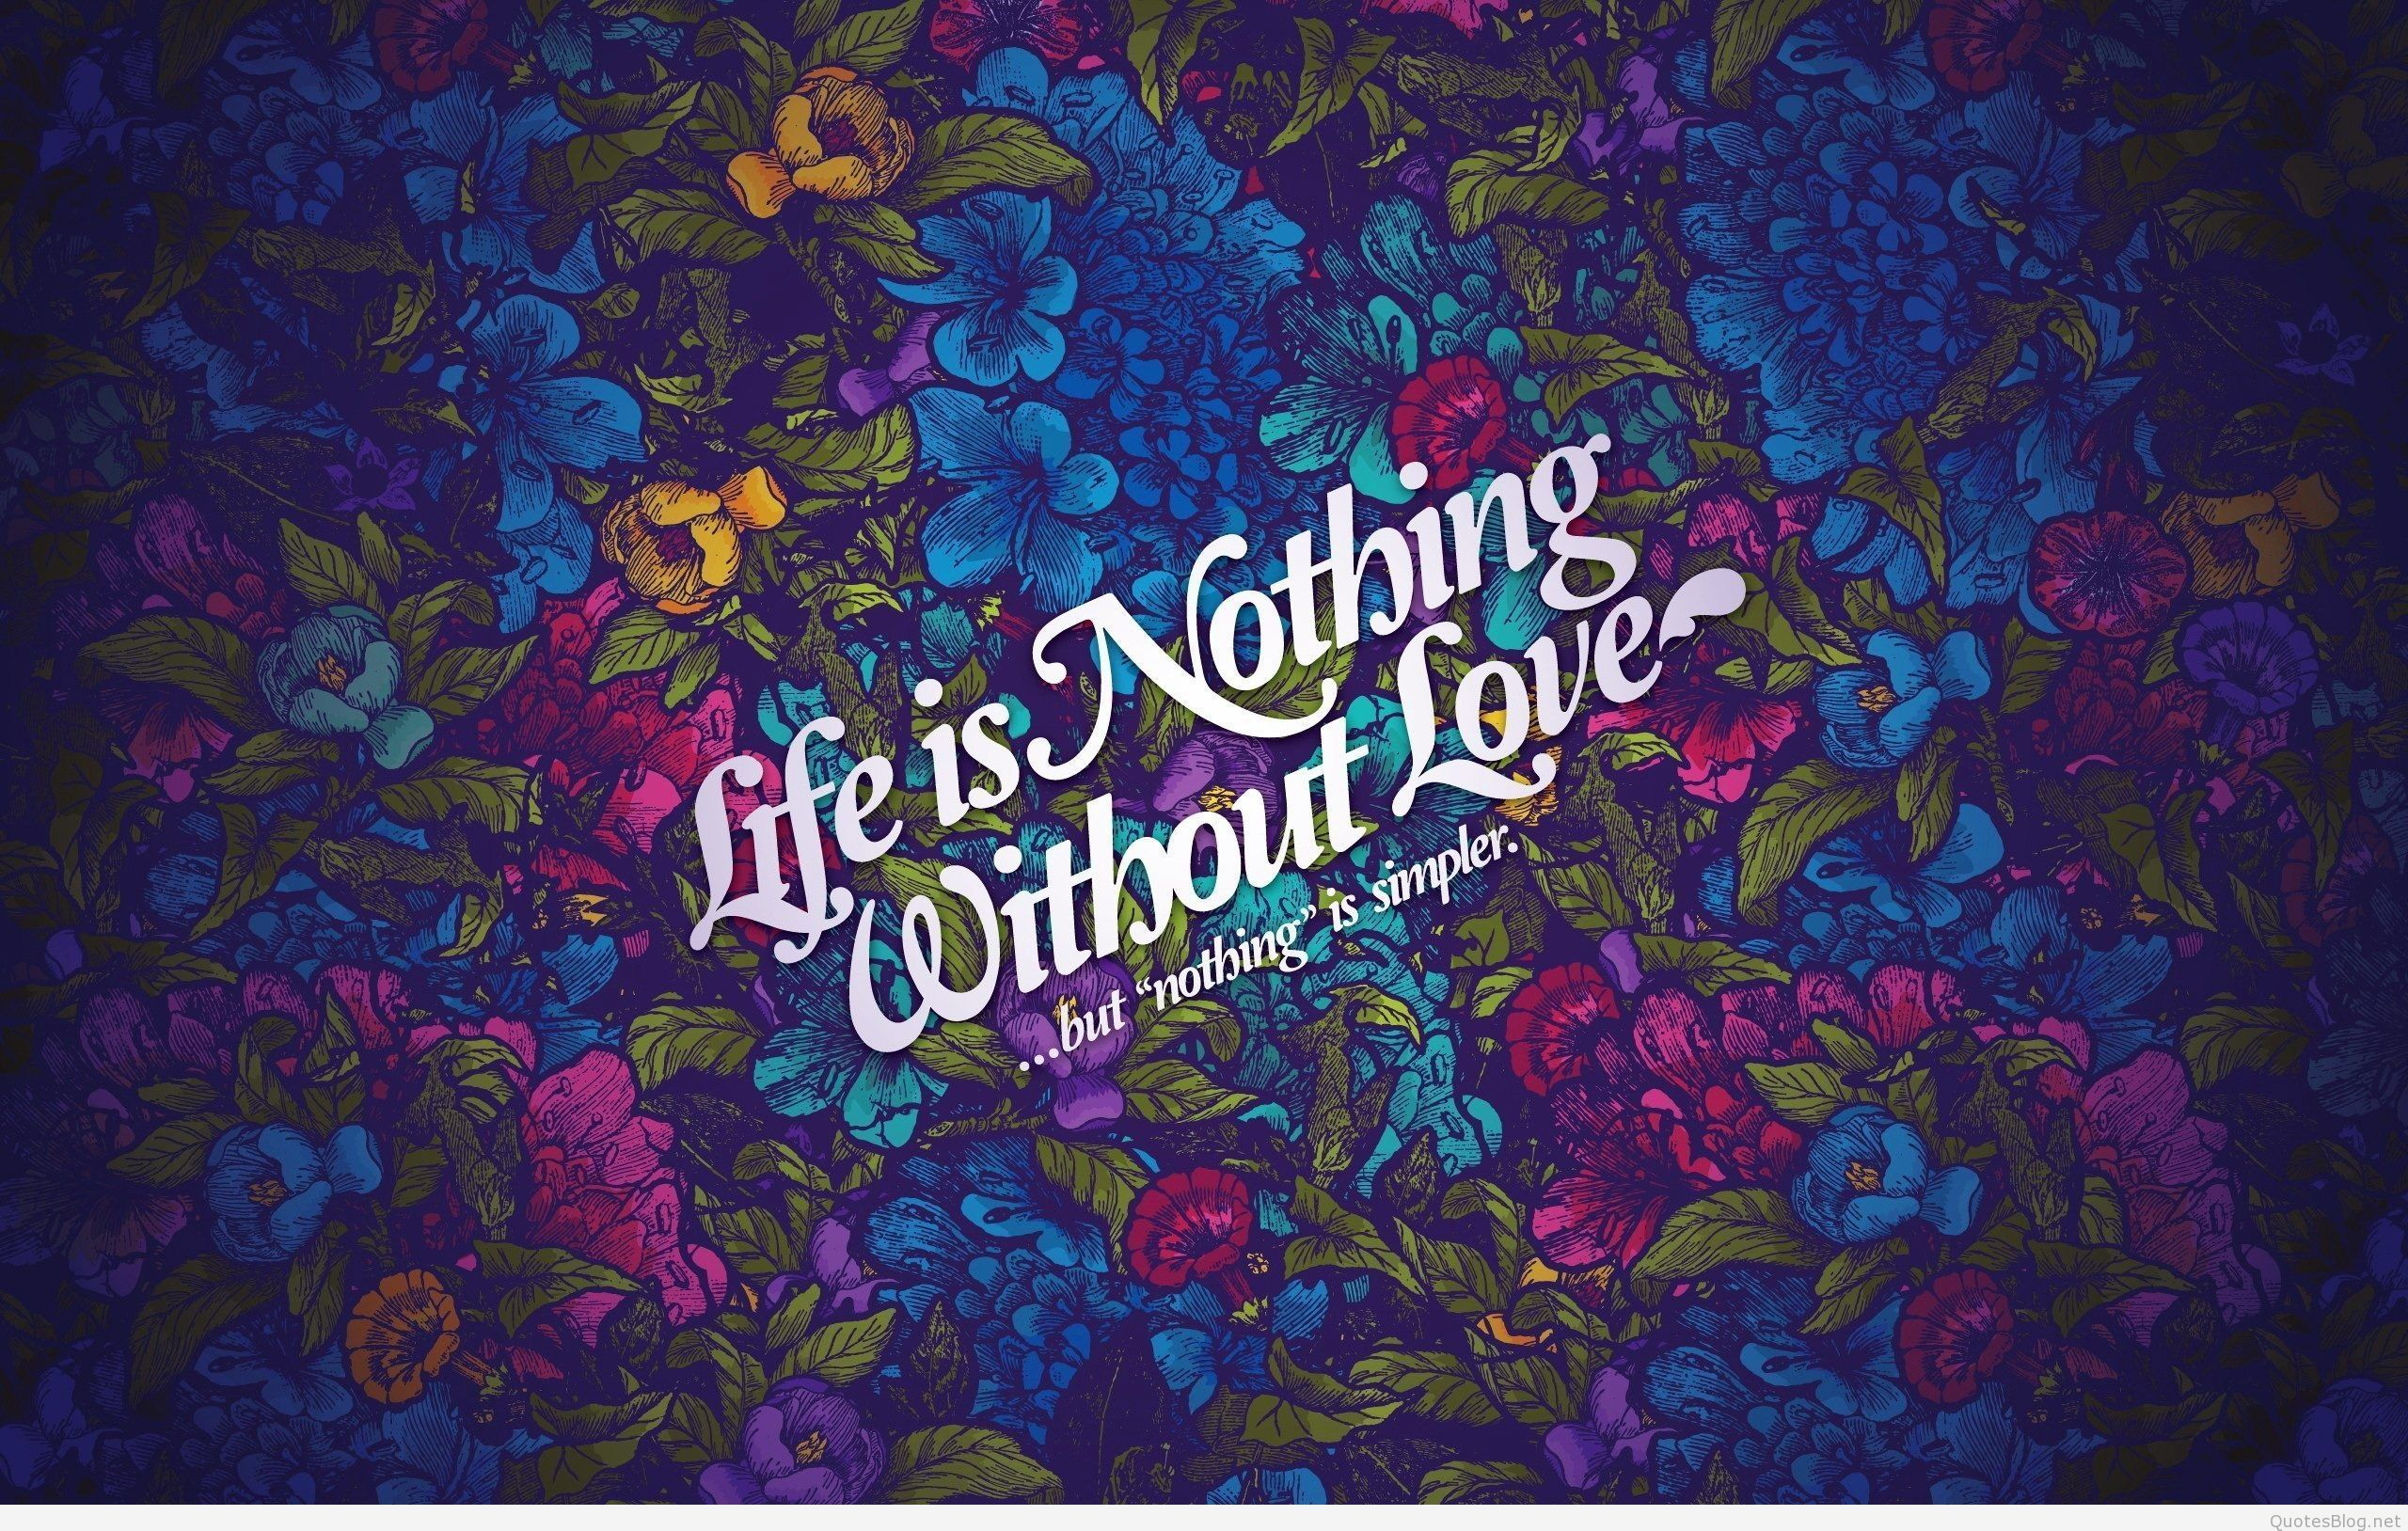 life is nothing without love picture quote find this pin and more on hd wallpapers